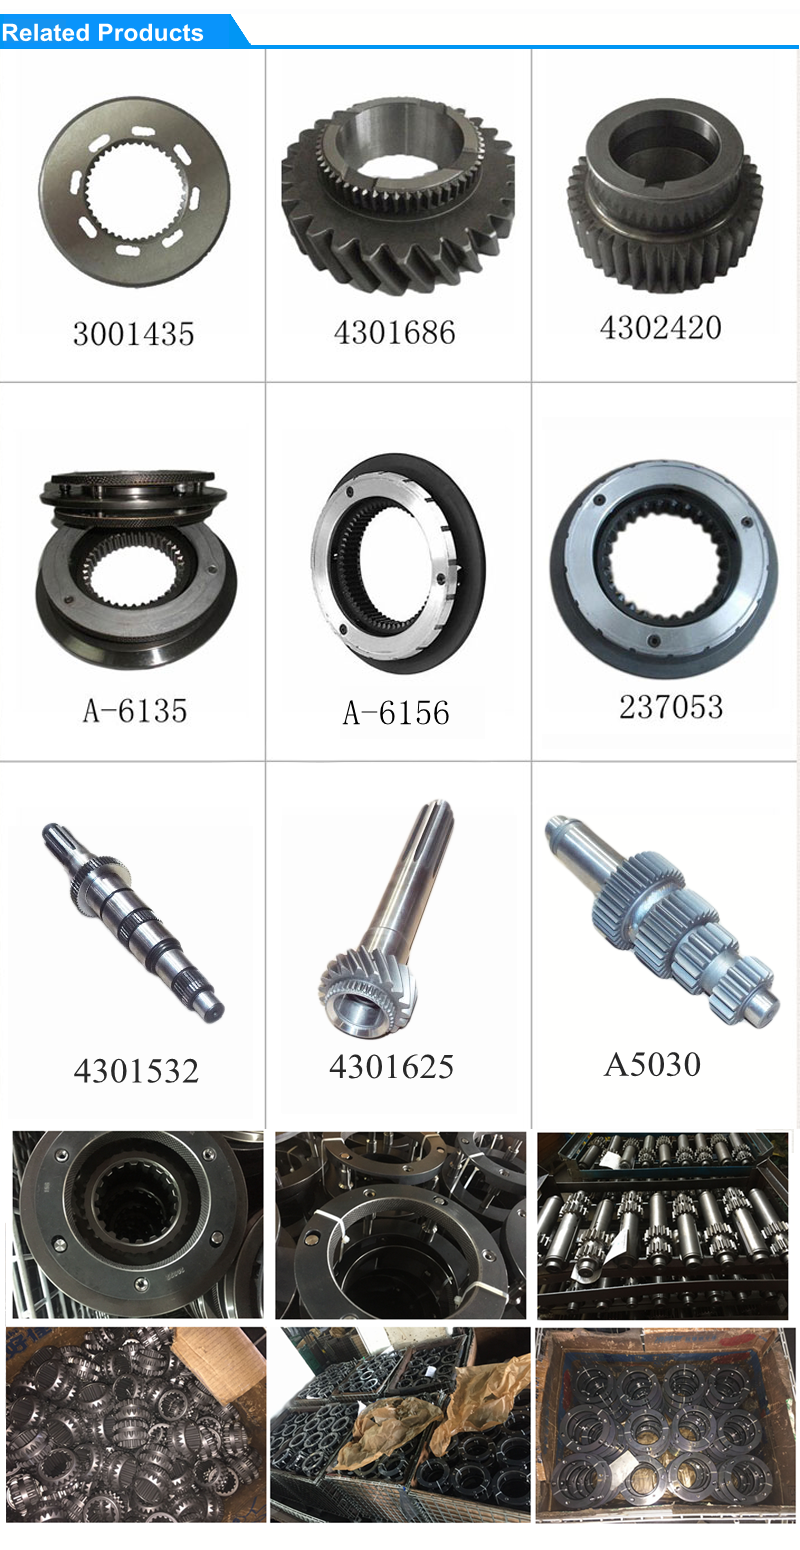 For Eaton Fuller Gearbox Parts,For Eaton Fuller Transmission